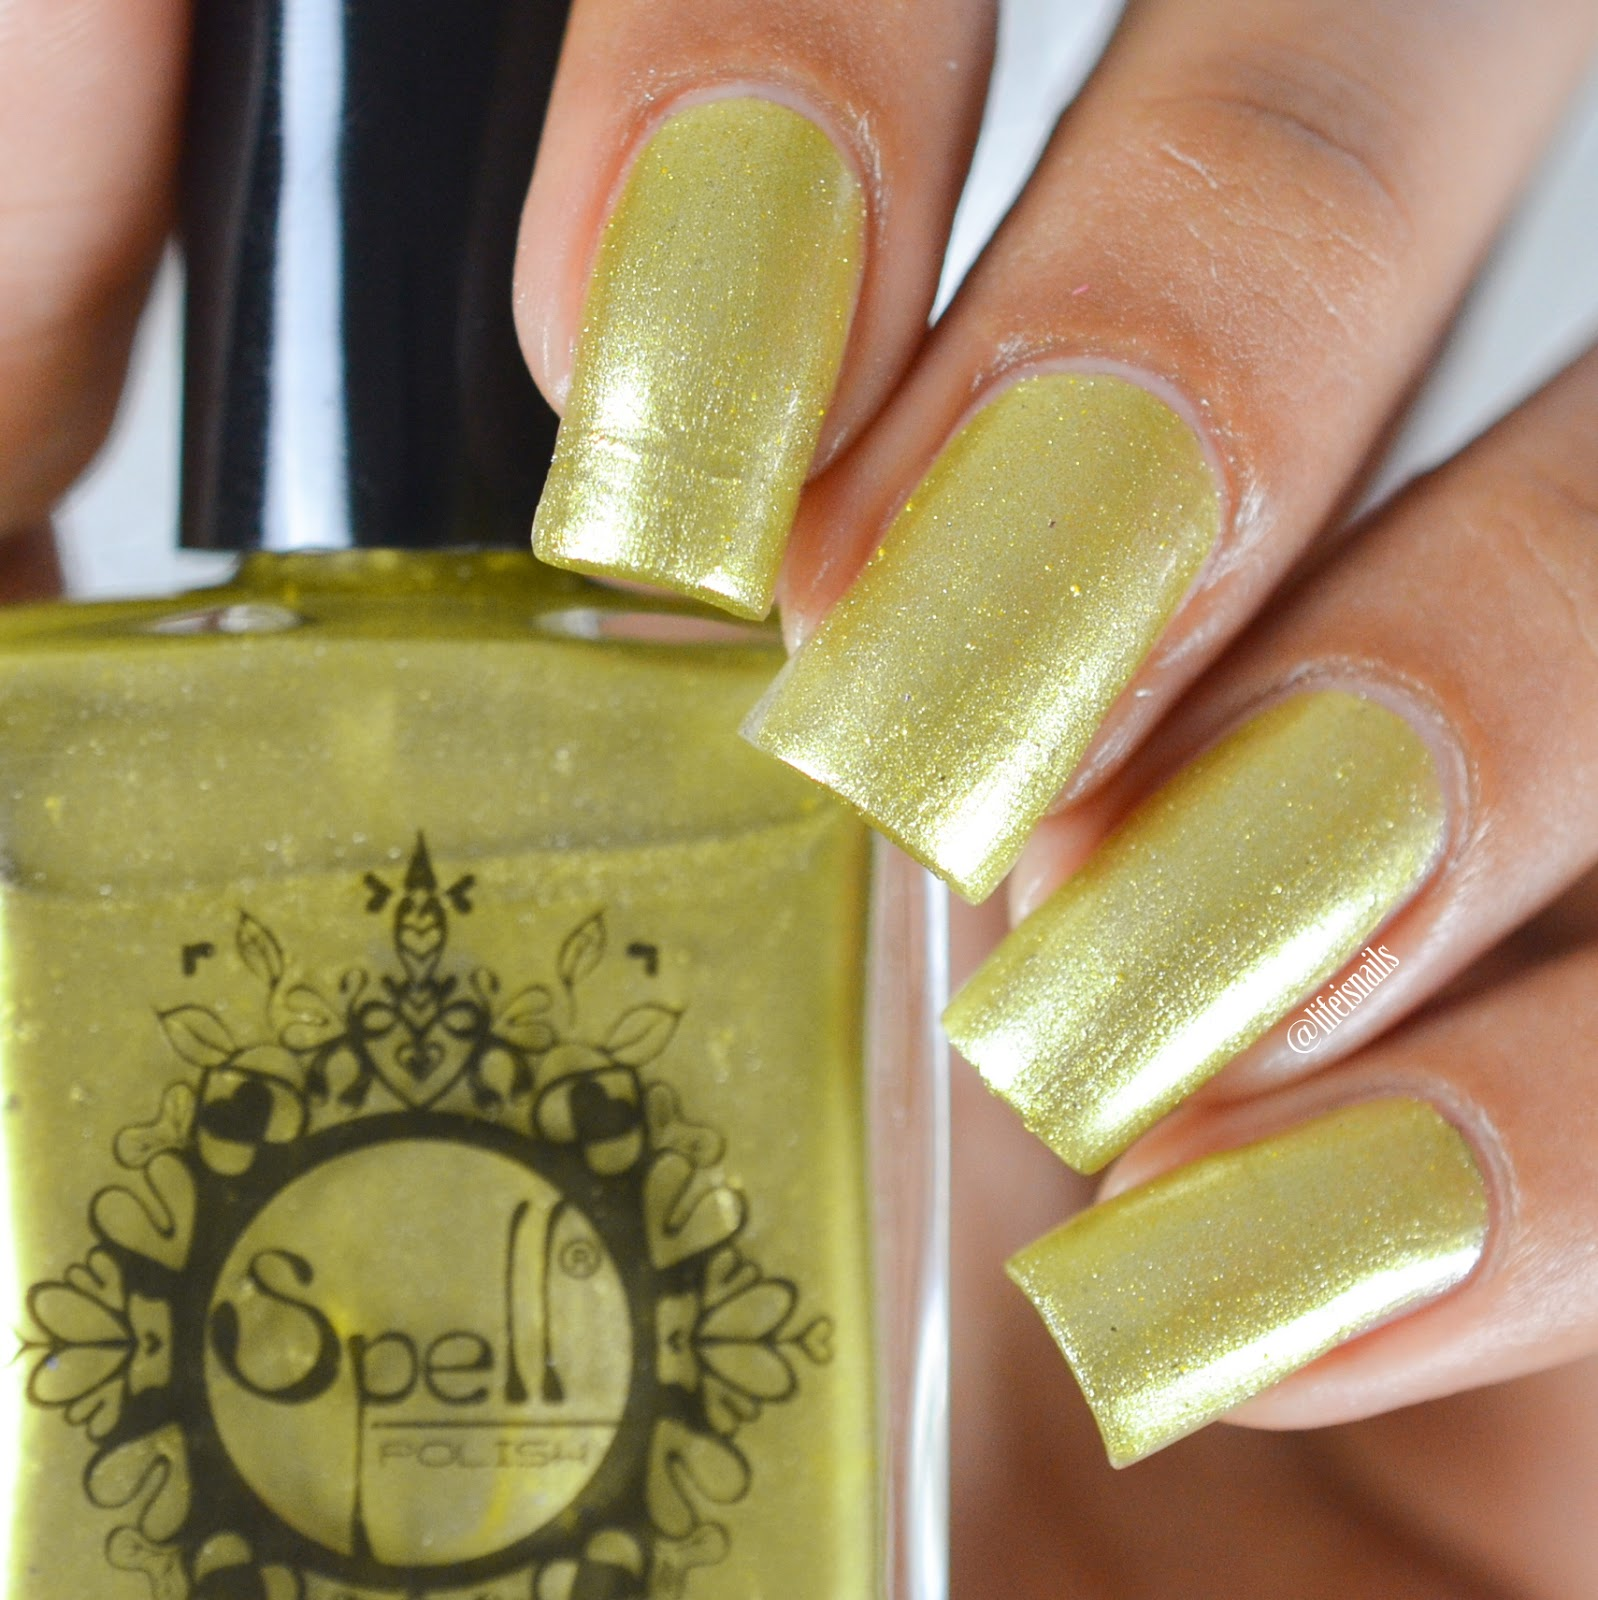 Spell Polish Duds III Collection - Swatches And Review ~ Lifeisnails